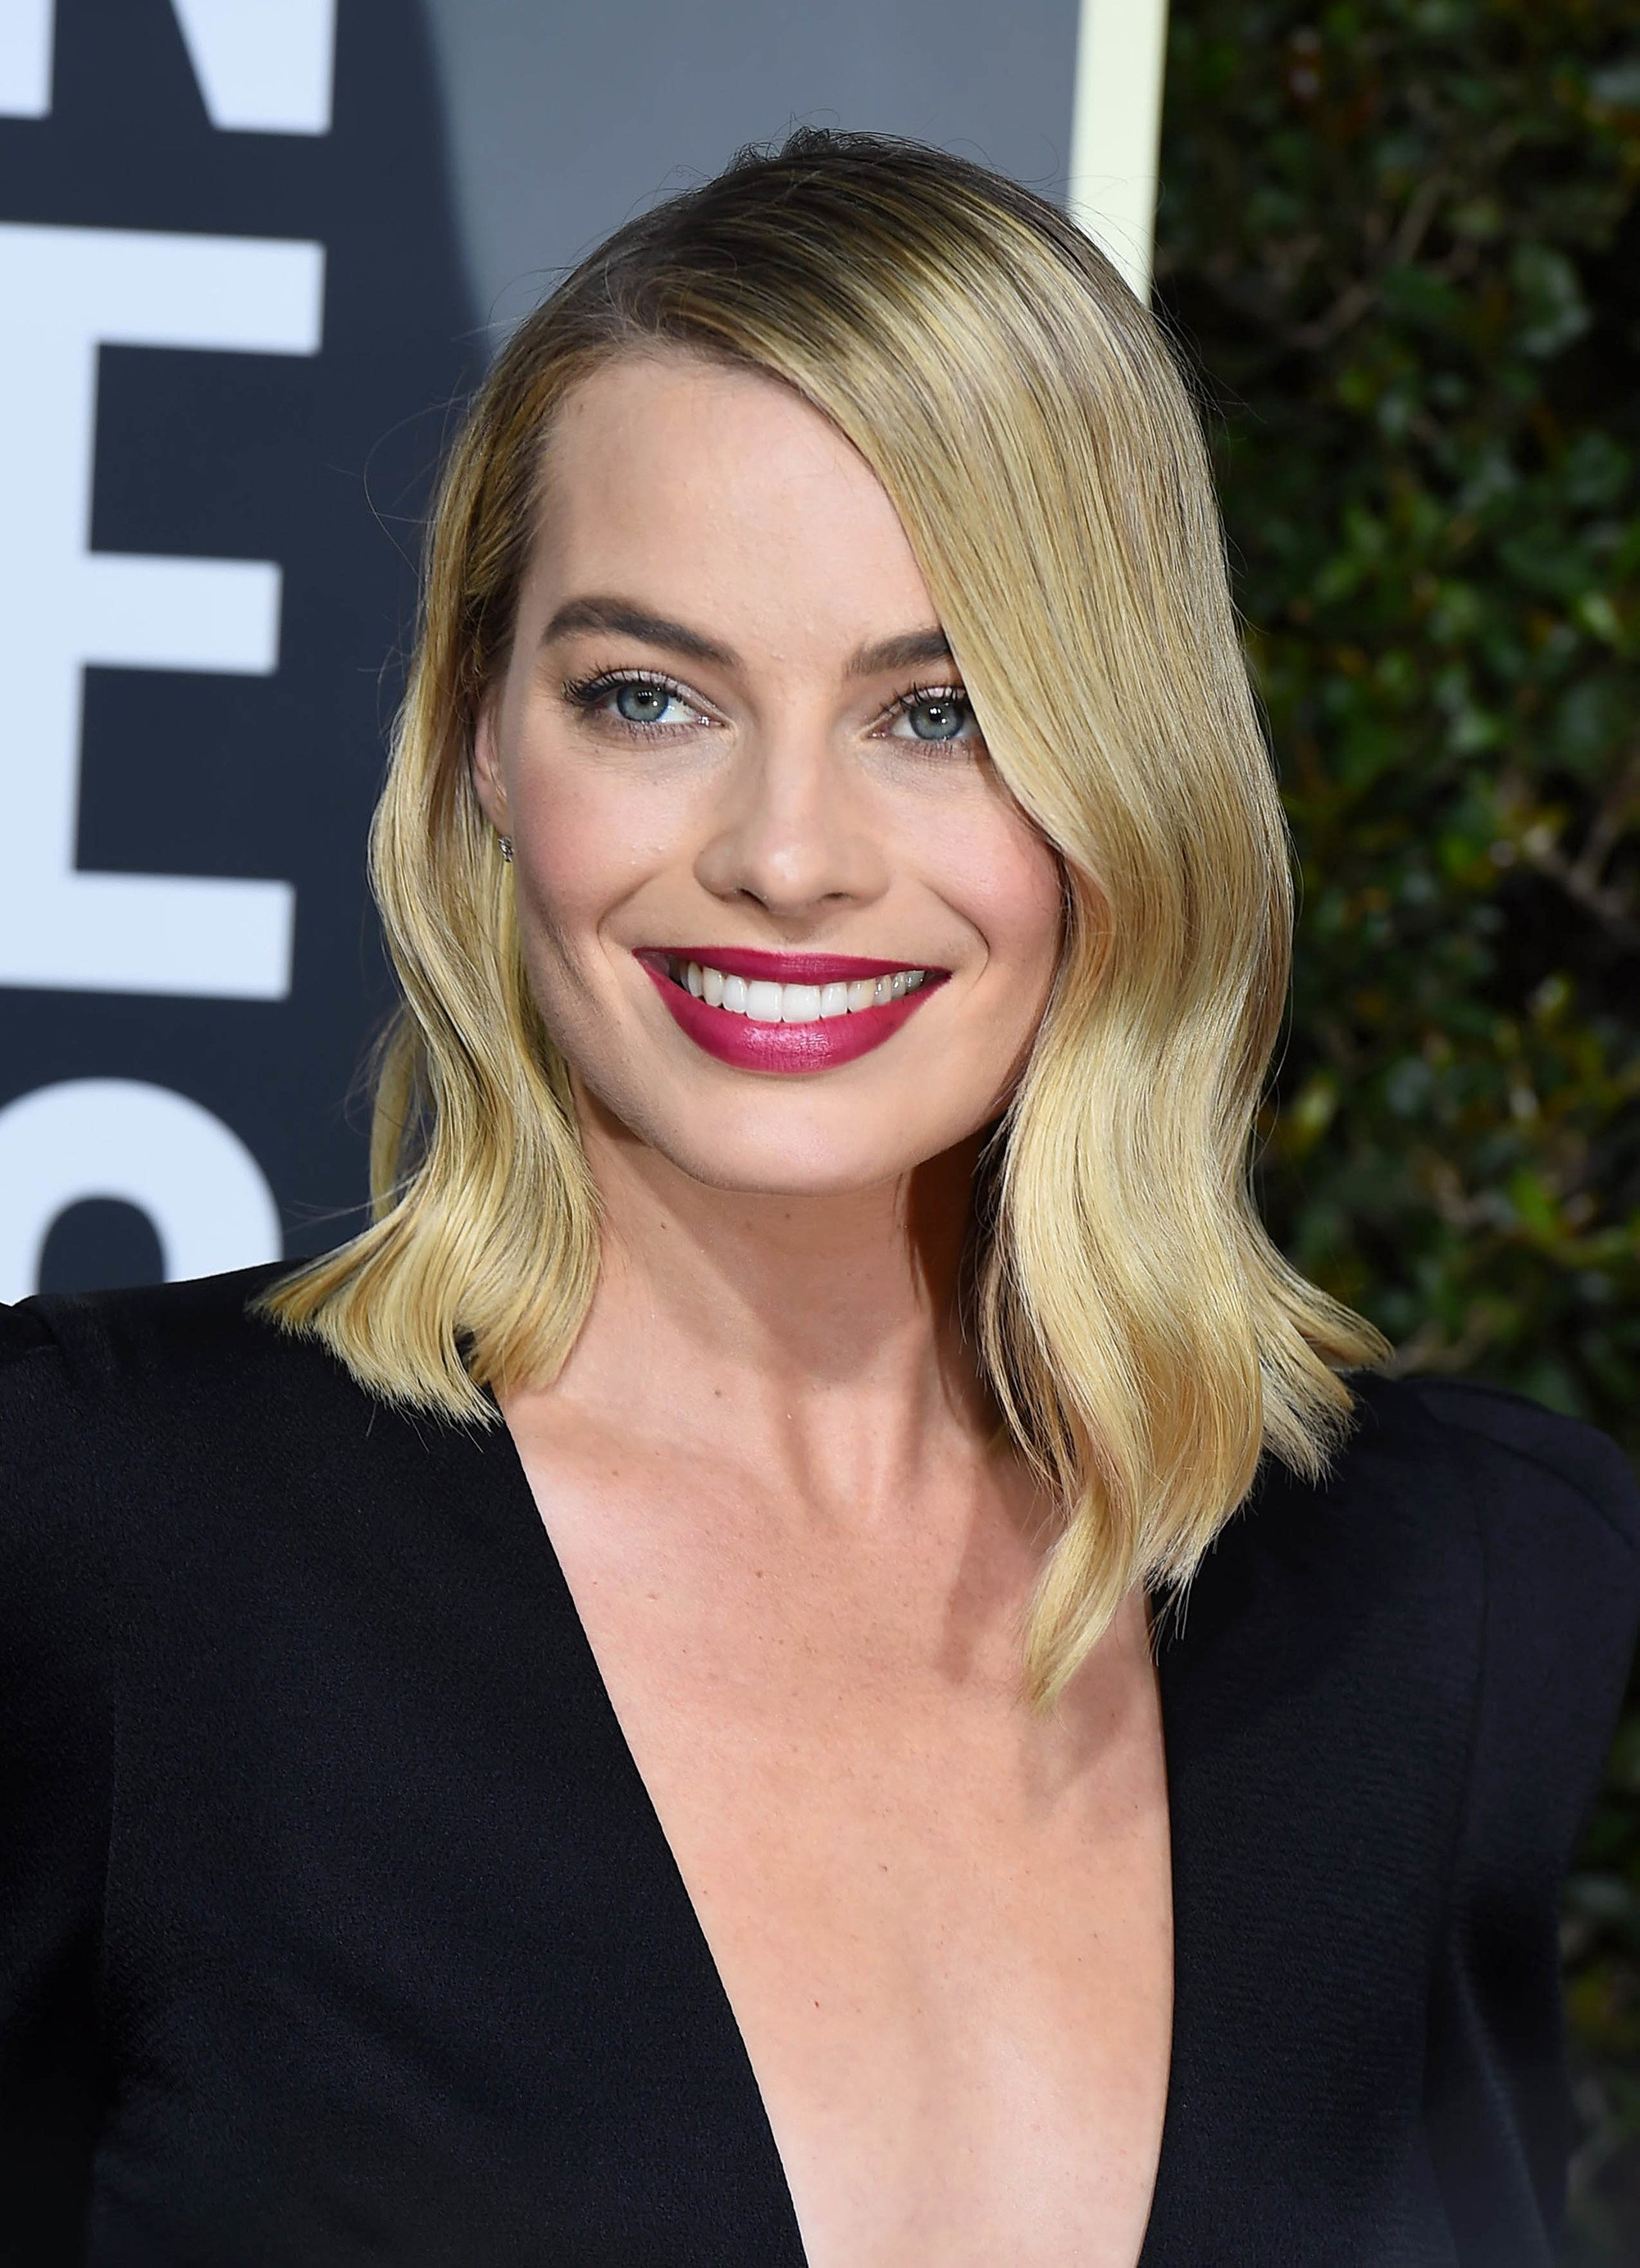 Blonde hair: Close up shot of Margot Robbie with golden blonde hair mid-length wavy hair.